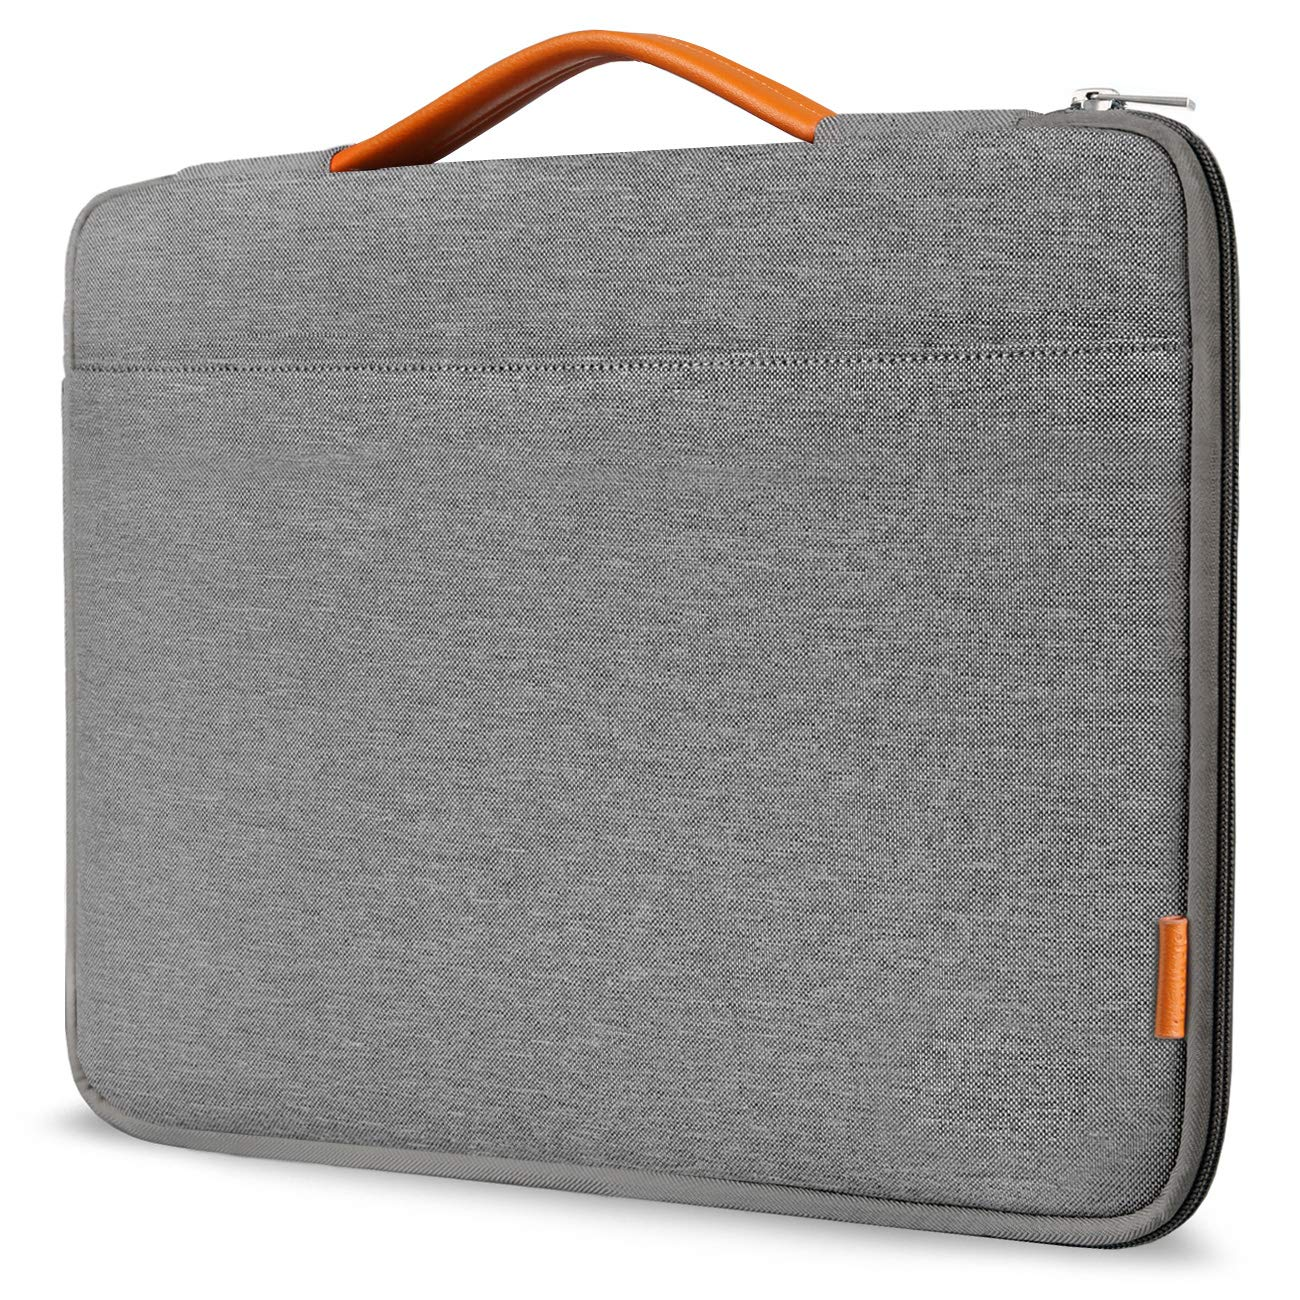 Inateck 13-13.3 Inch Sleeve Case Briefcase Cover Protective Bag Ultrabook Netbook Carrying Protector Handbag Compatible 13'' MacBook Air/MacBook Pro(Retina) 2012-2015, 2018/2017/2016 Dark Gray by Inateck